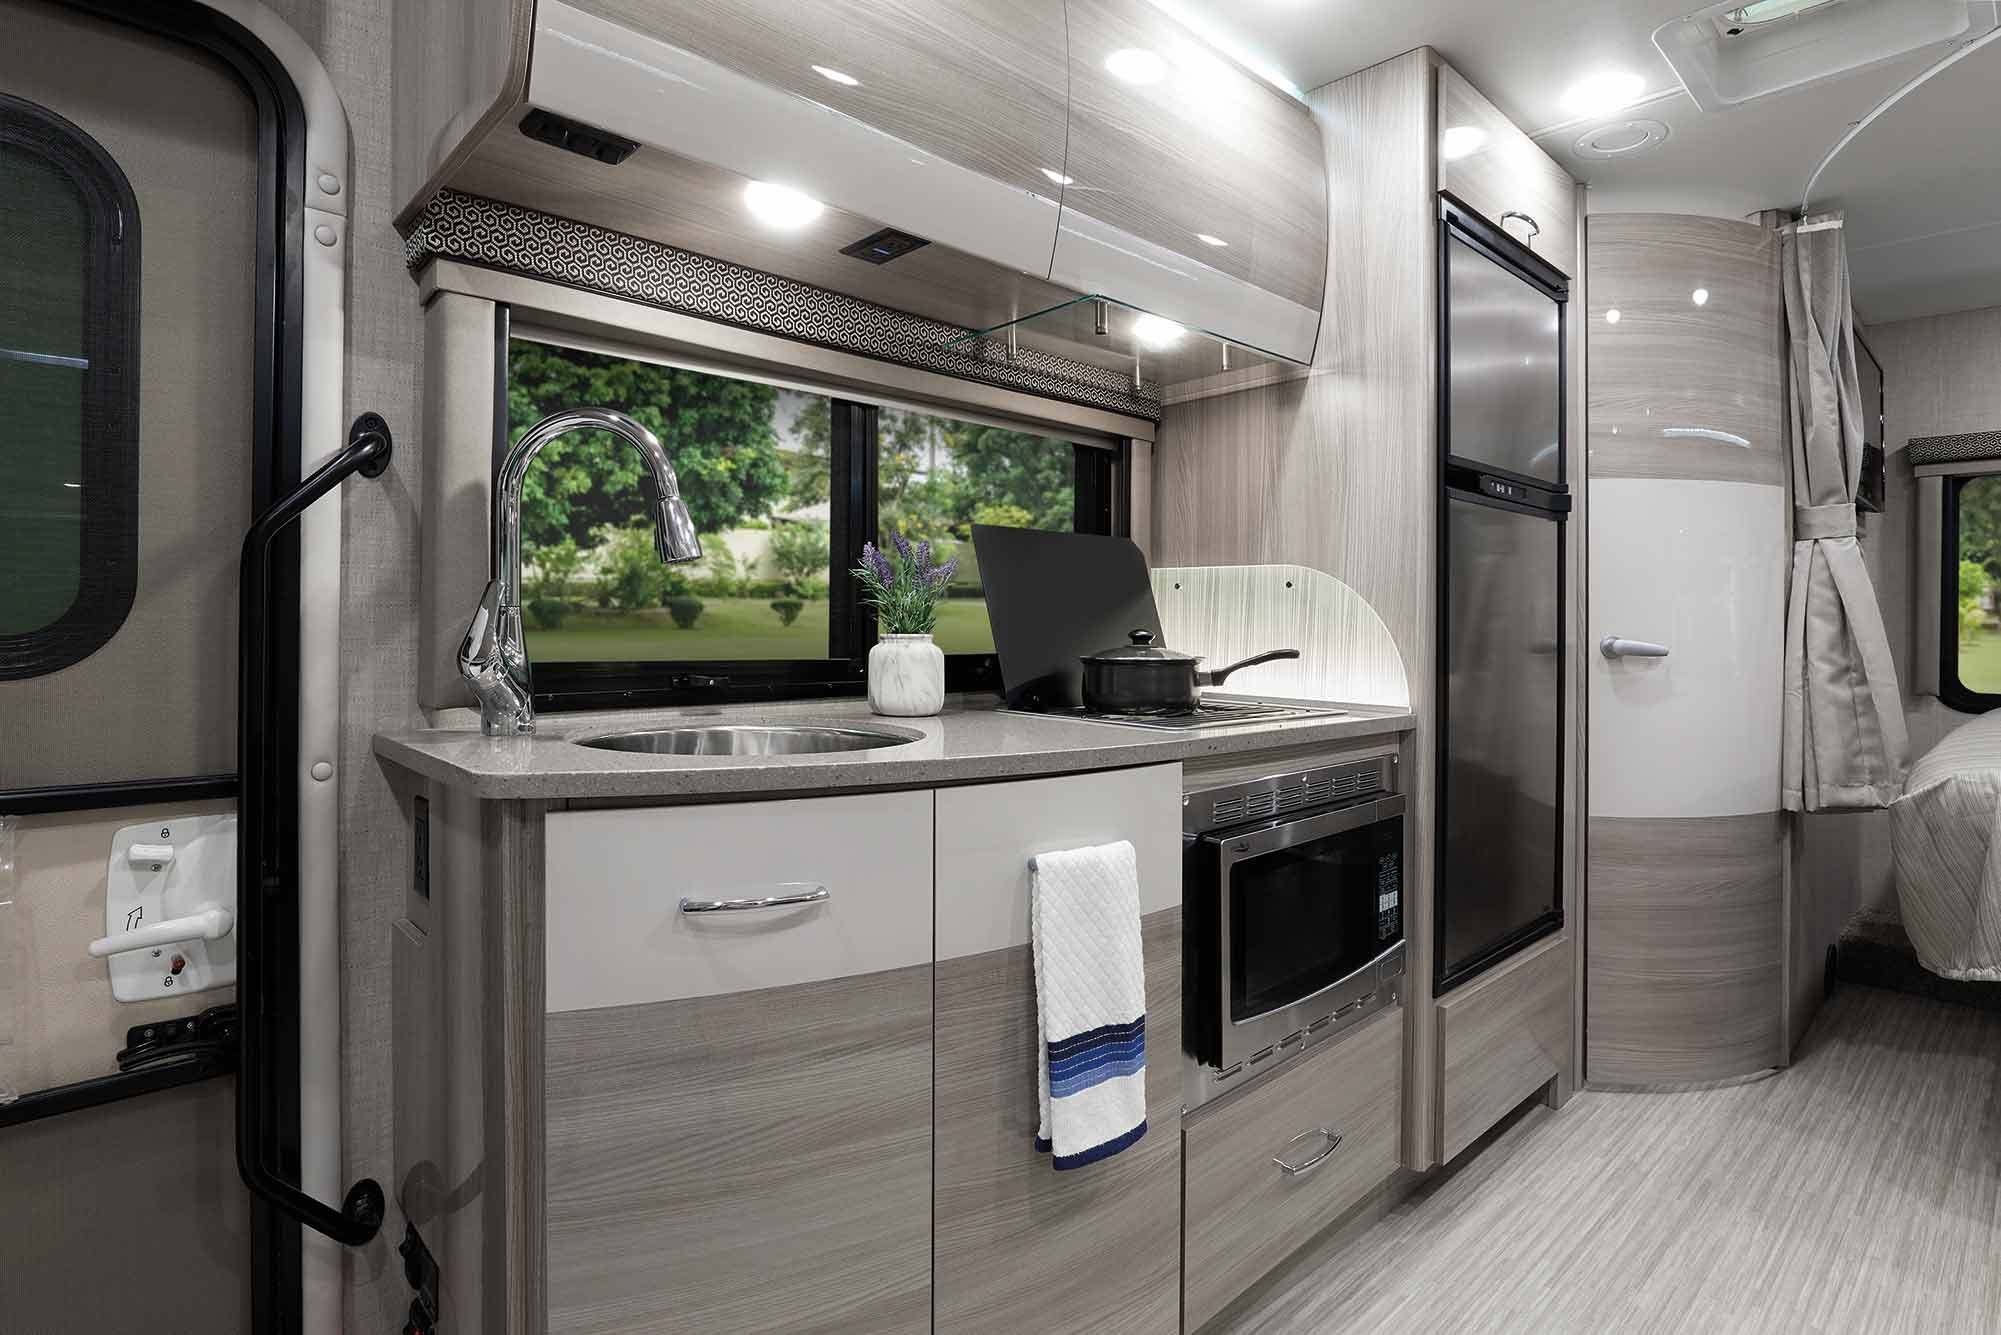 An Easy To Drive Motorhome On A Sprinter Chassis The Tiburon